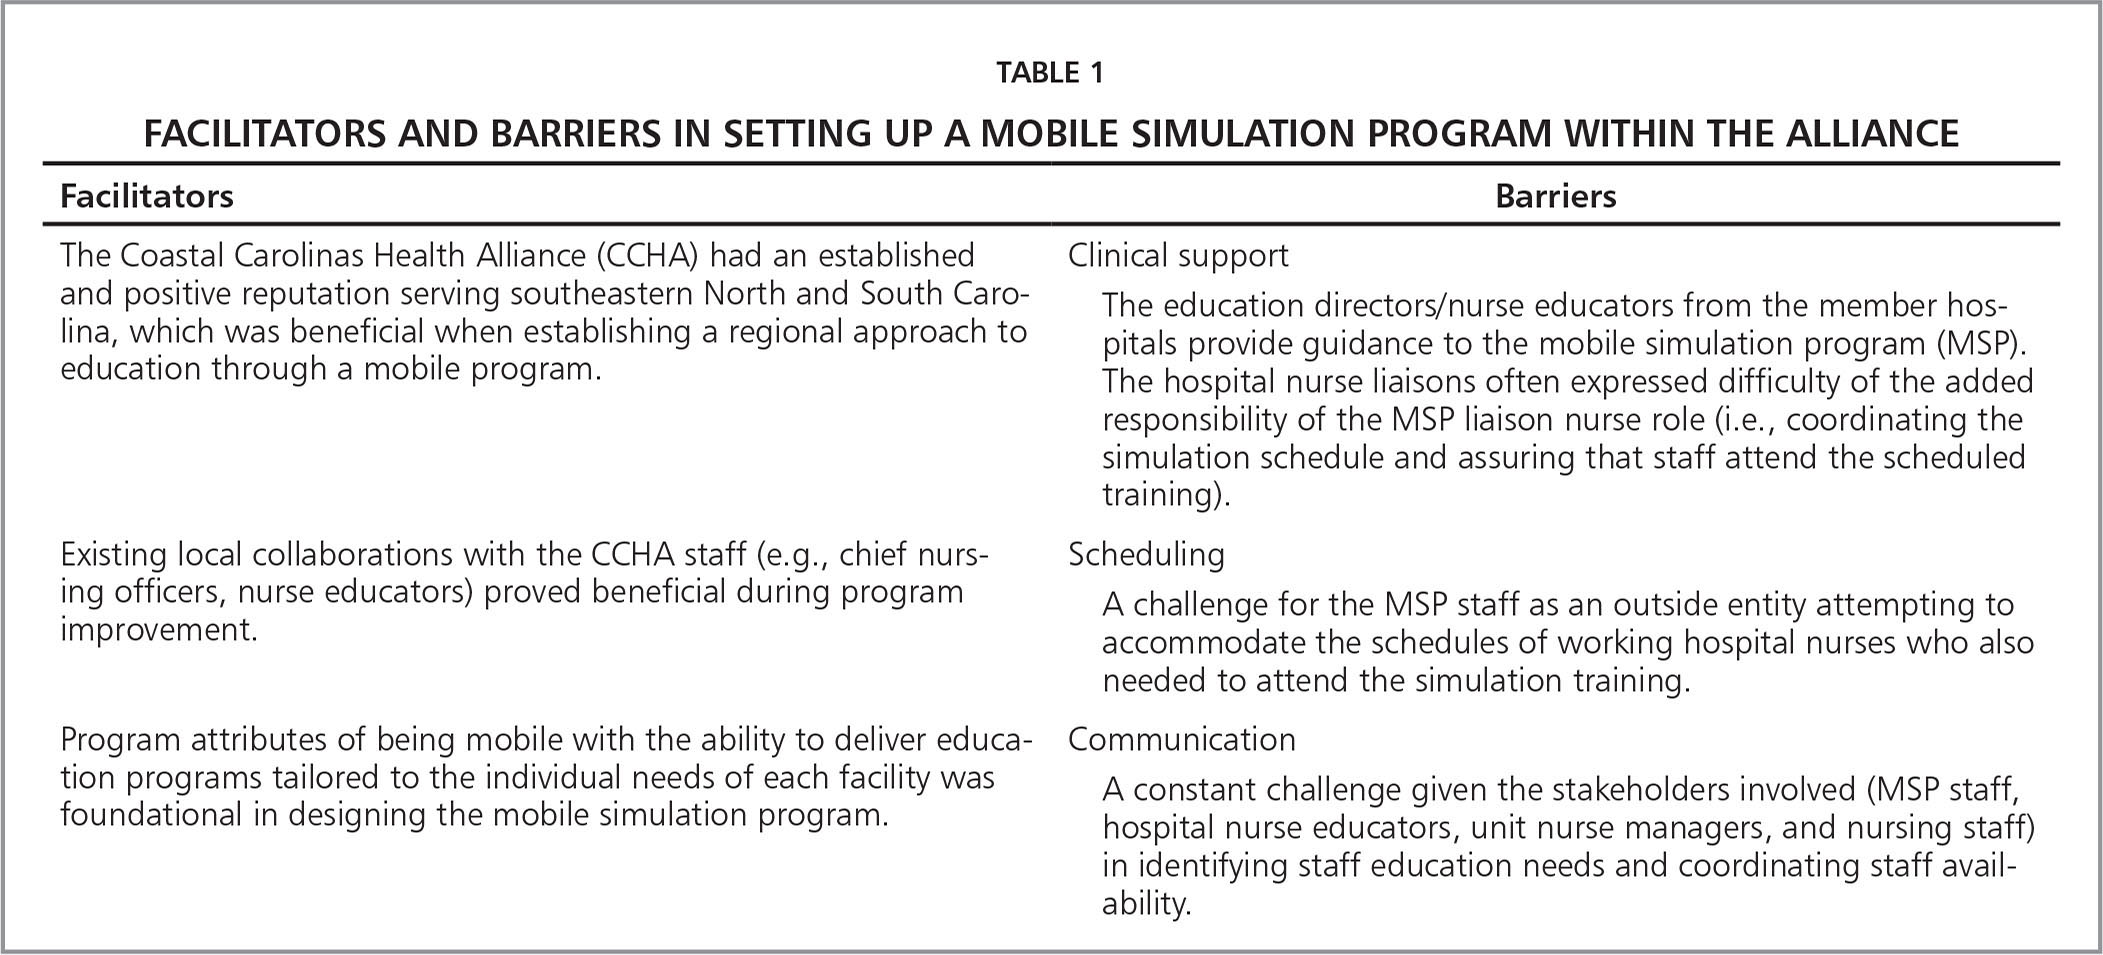 Facilitators and Barriers in Setting Up a Mobile Simulation Program Within the Alliance